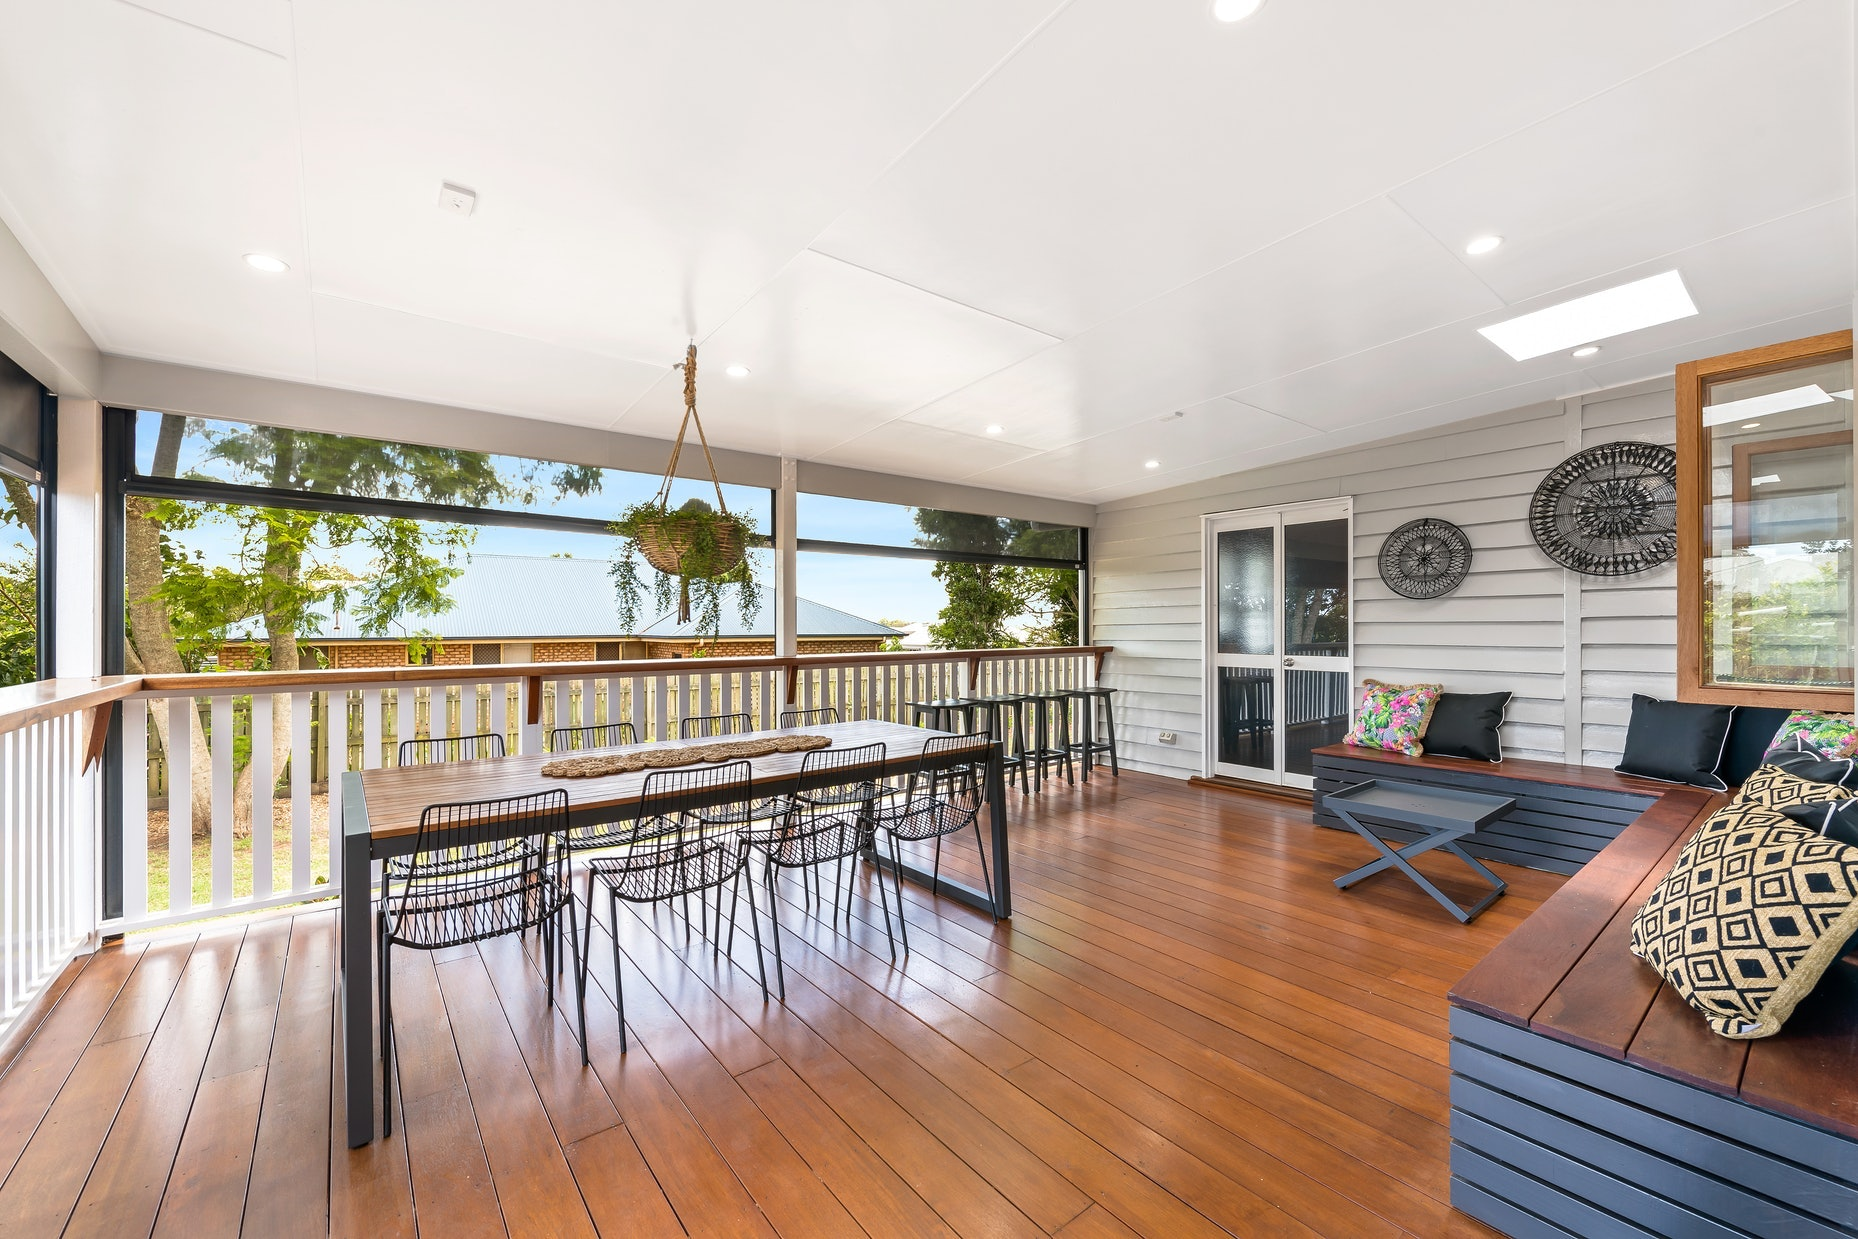 Deck with wooden table, hanging plant and corner bench seating